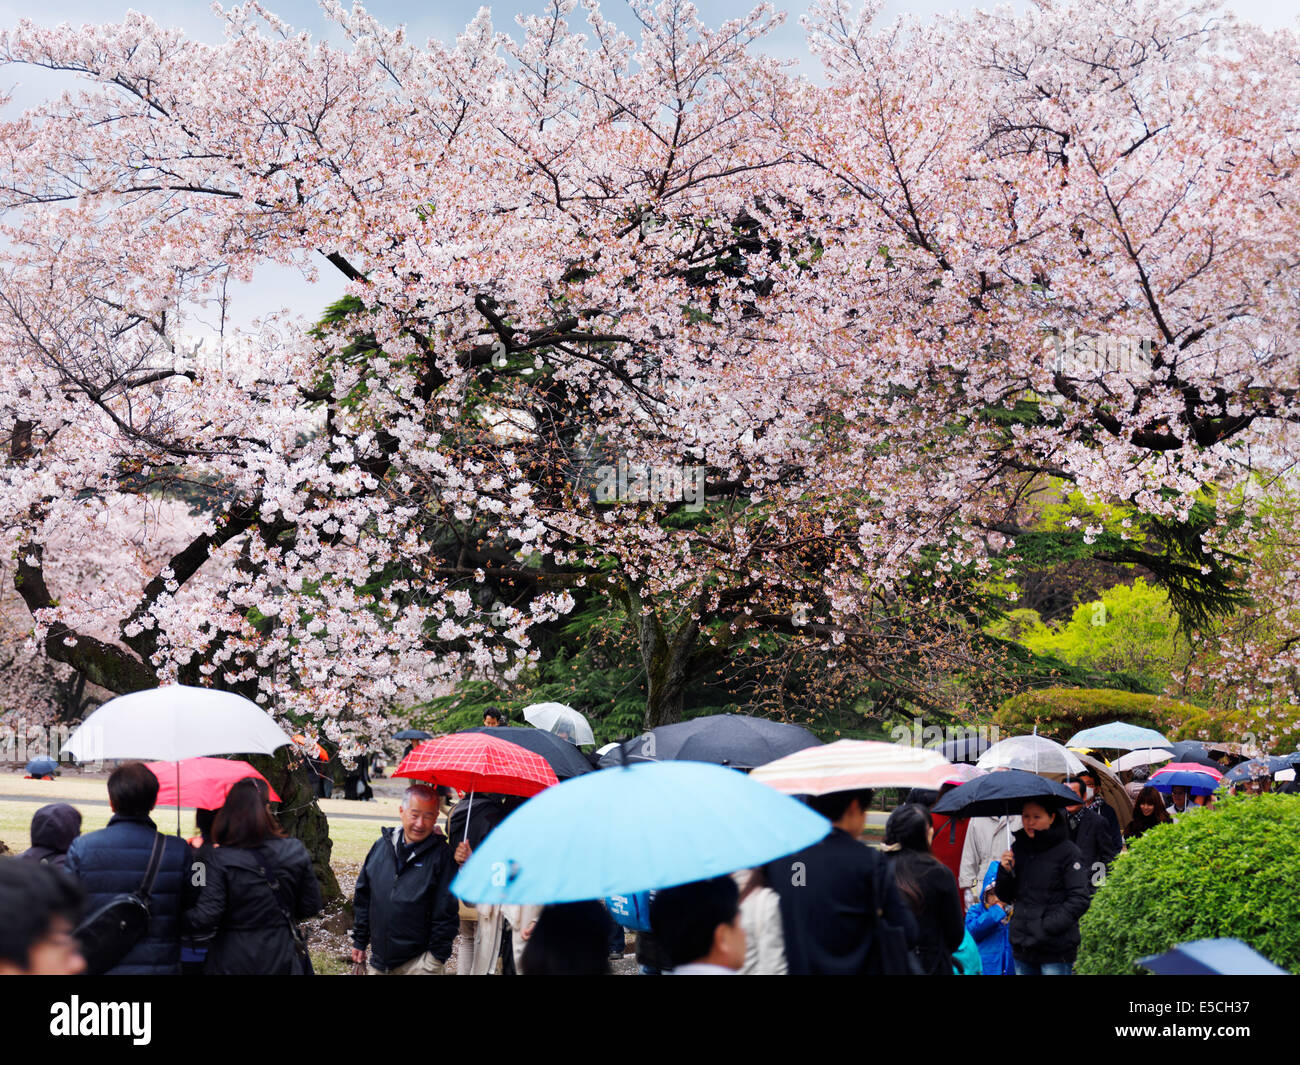 People with colorful umbrellas under a rain during cherry blossom at Shinjuku Gyoen National Garden in Tokyo, Japan. - Stock Image